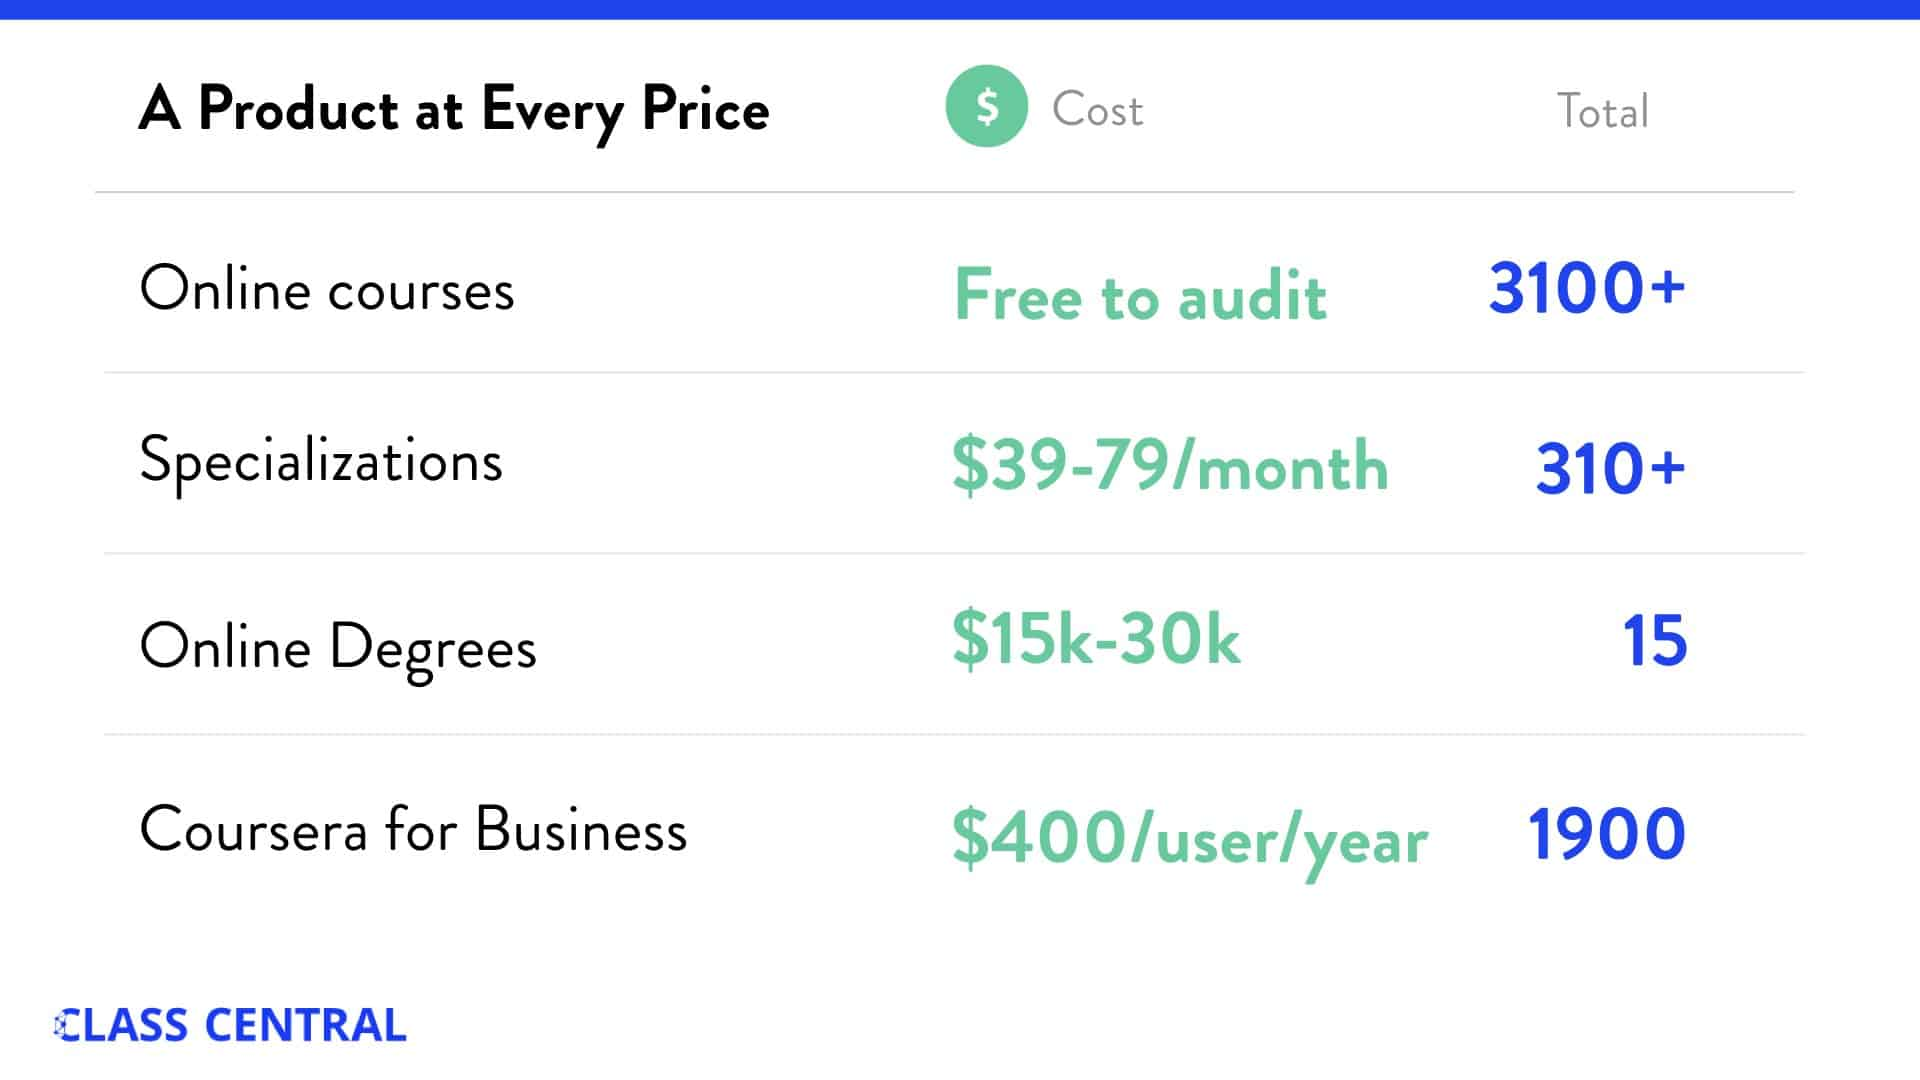 Coursera - Product at every price